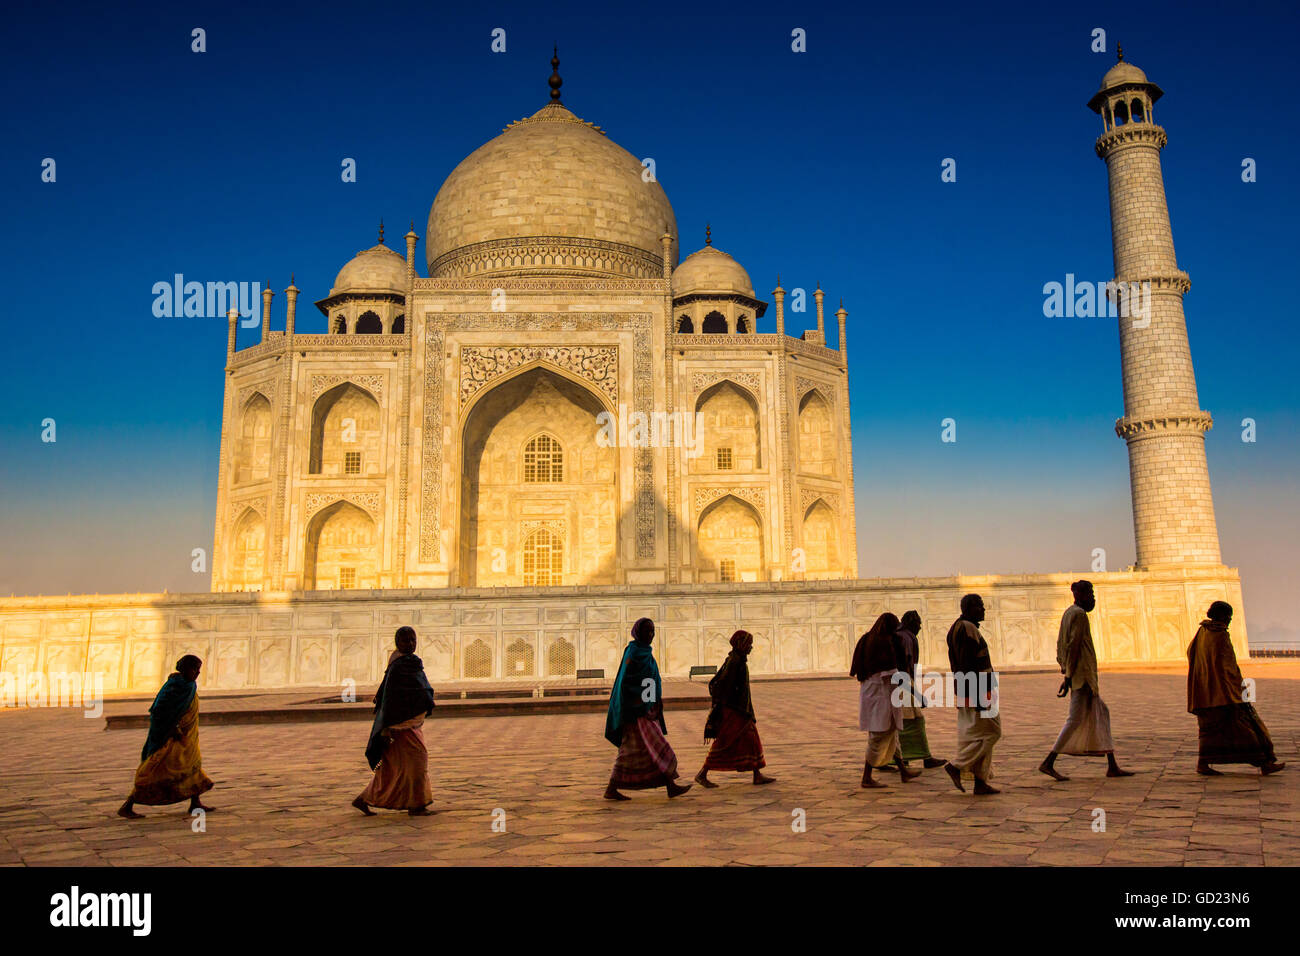 People walking to pray in front of the Taj Mahal, UNESCO World Heritage Site, Agra, Uttar Pradesh, India, Asia - Stock Image